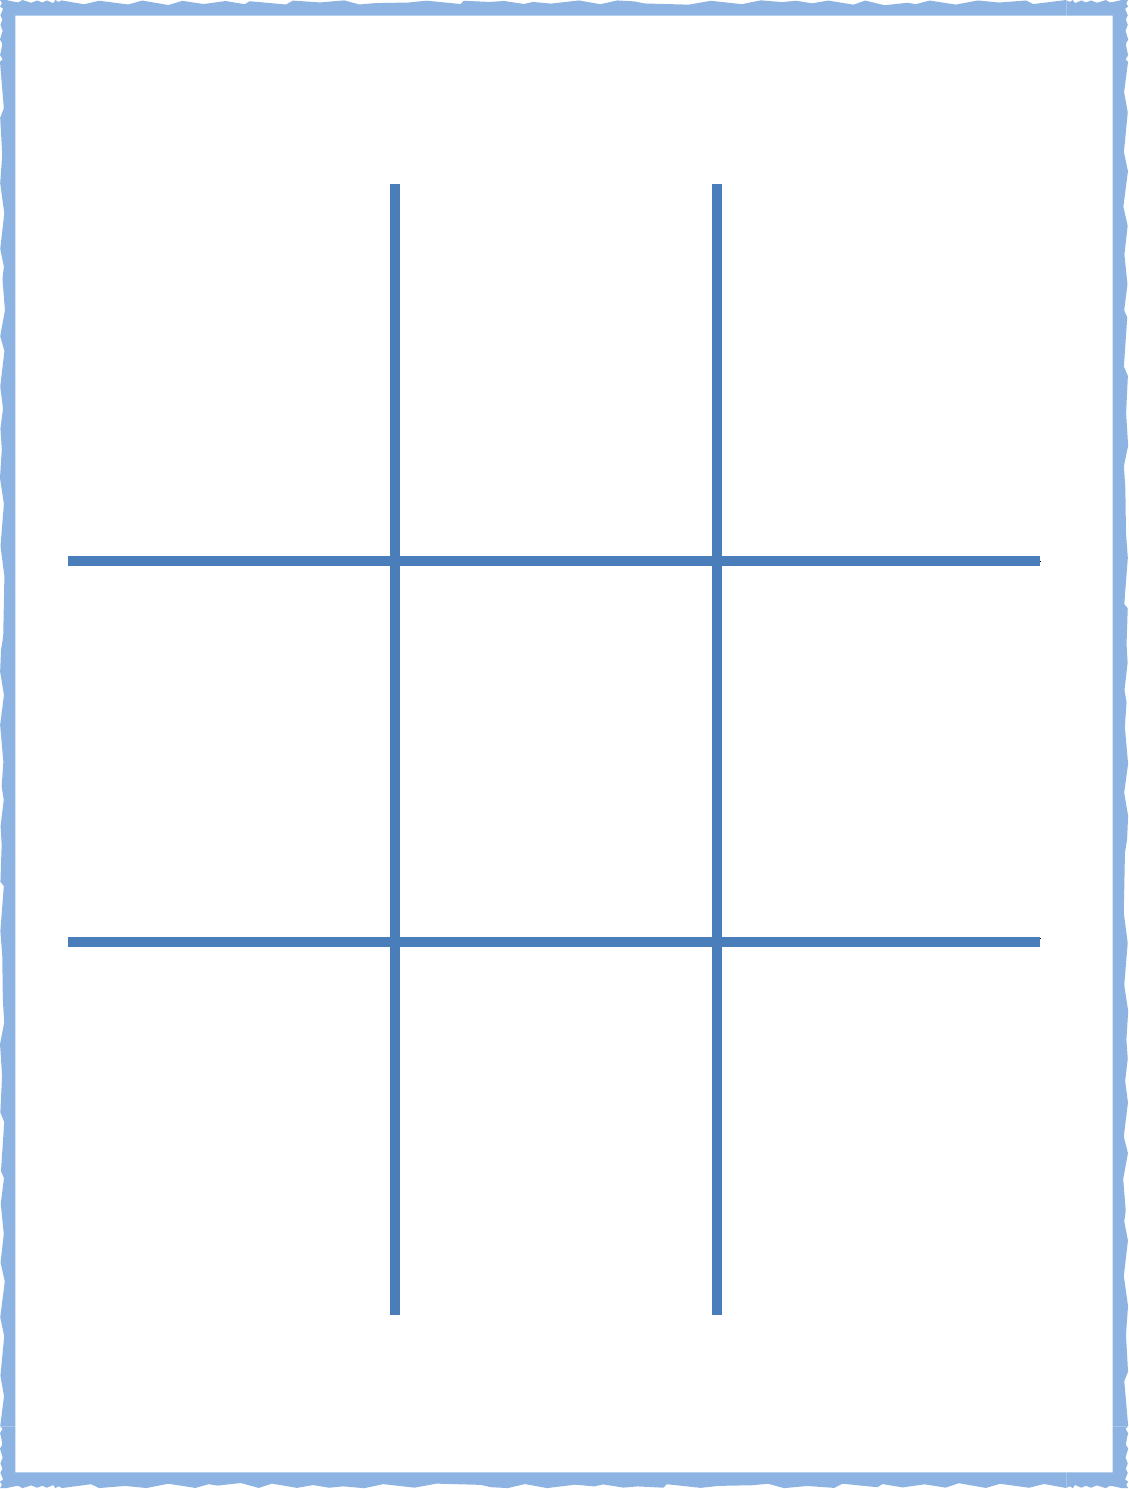 graphic about Tic Tac Toe Board Printable referred to as Obtain Tic Tac Toe Recreation Board for Free of charge - TidyTemplates